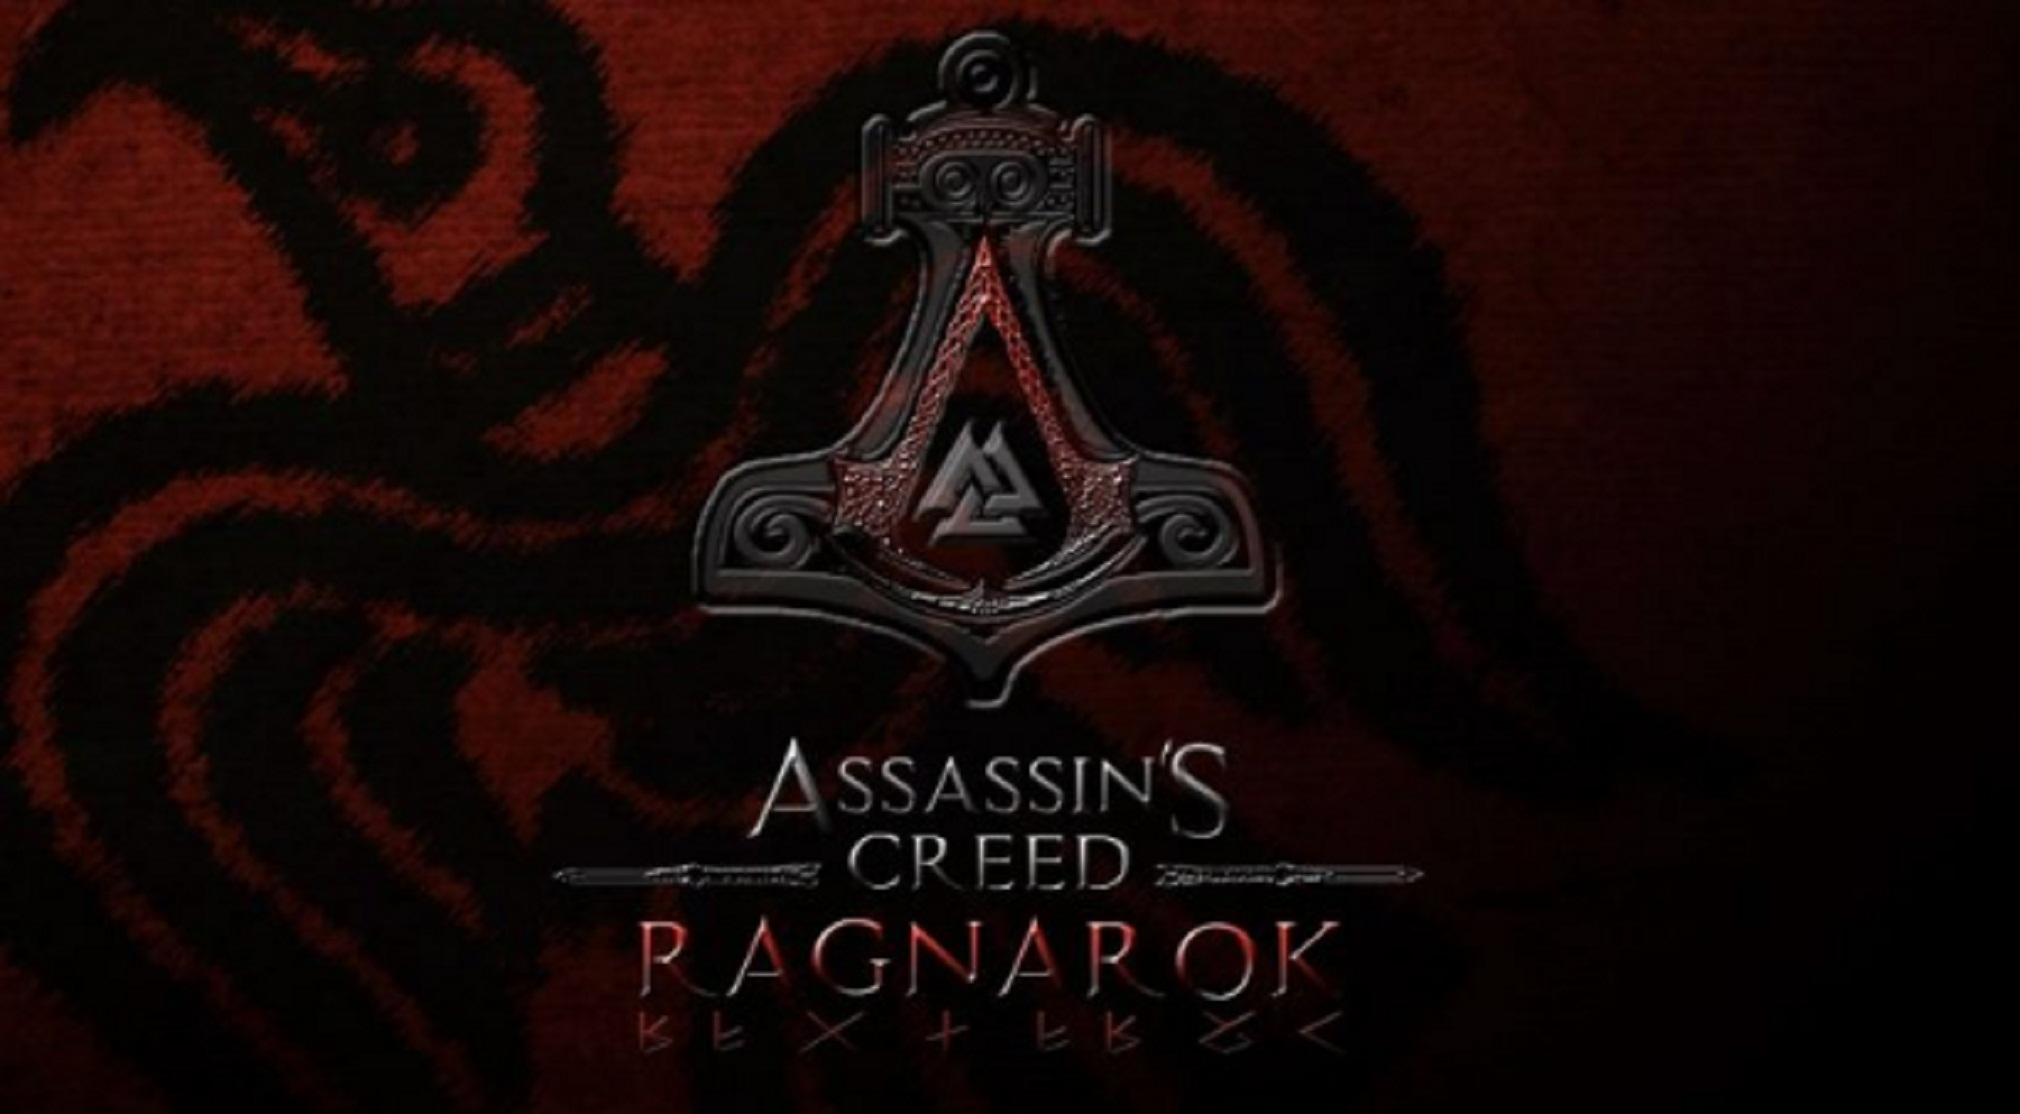 Assassin's Creed Ragnarok May Likely Not Be The Name Of The Next Entry In The Franchise, Says Analyst